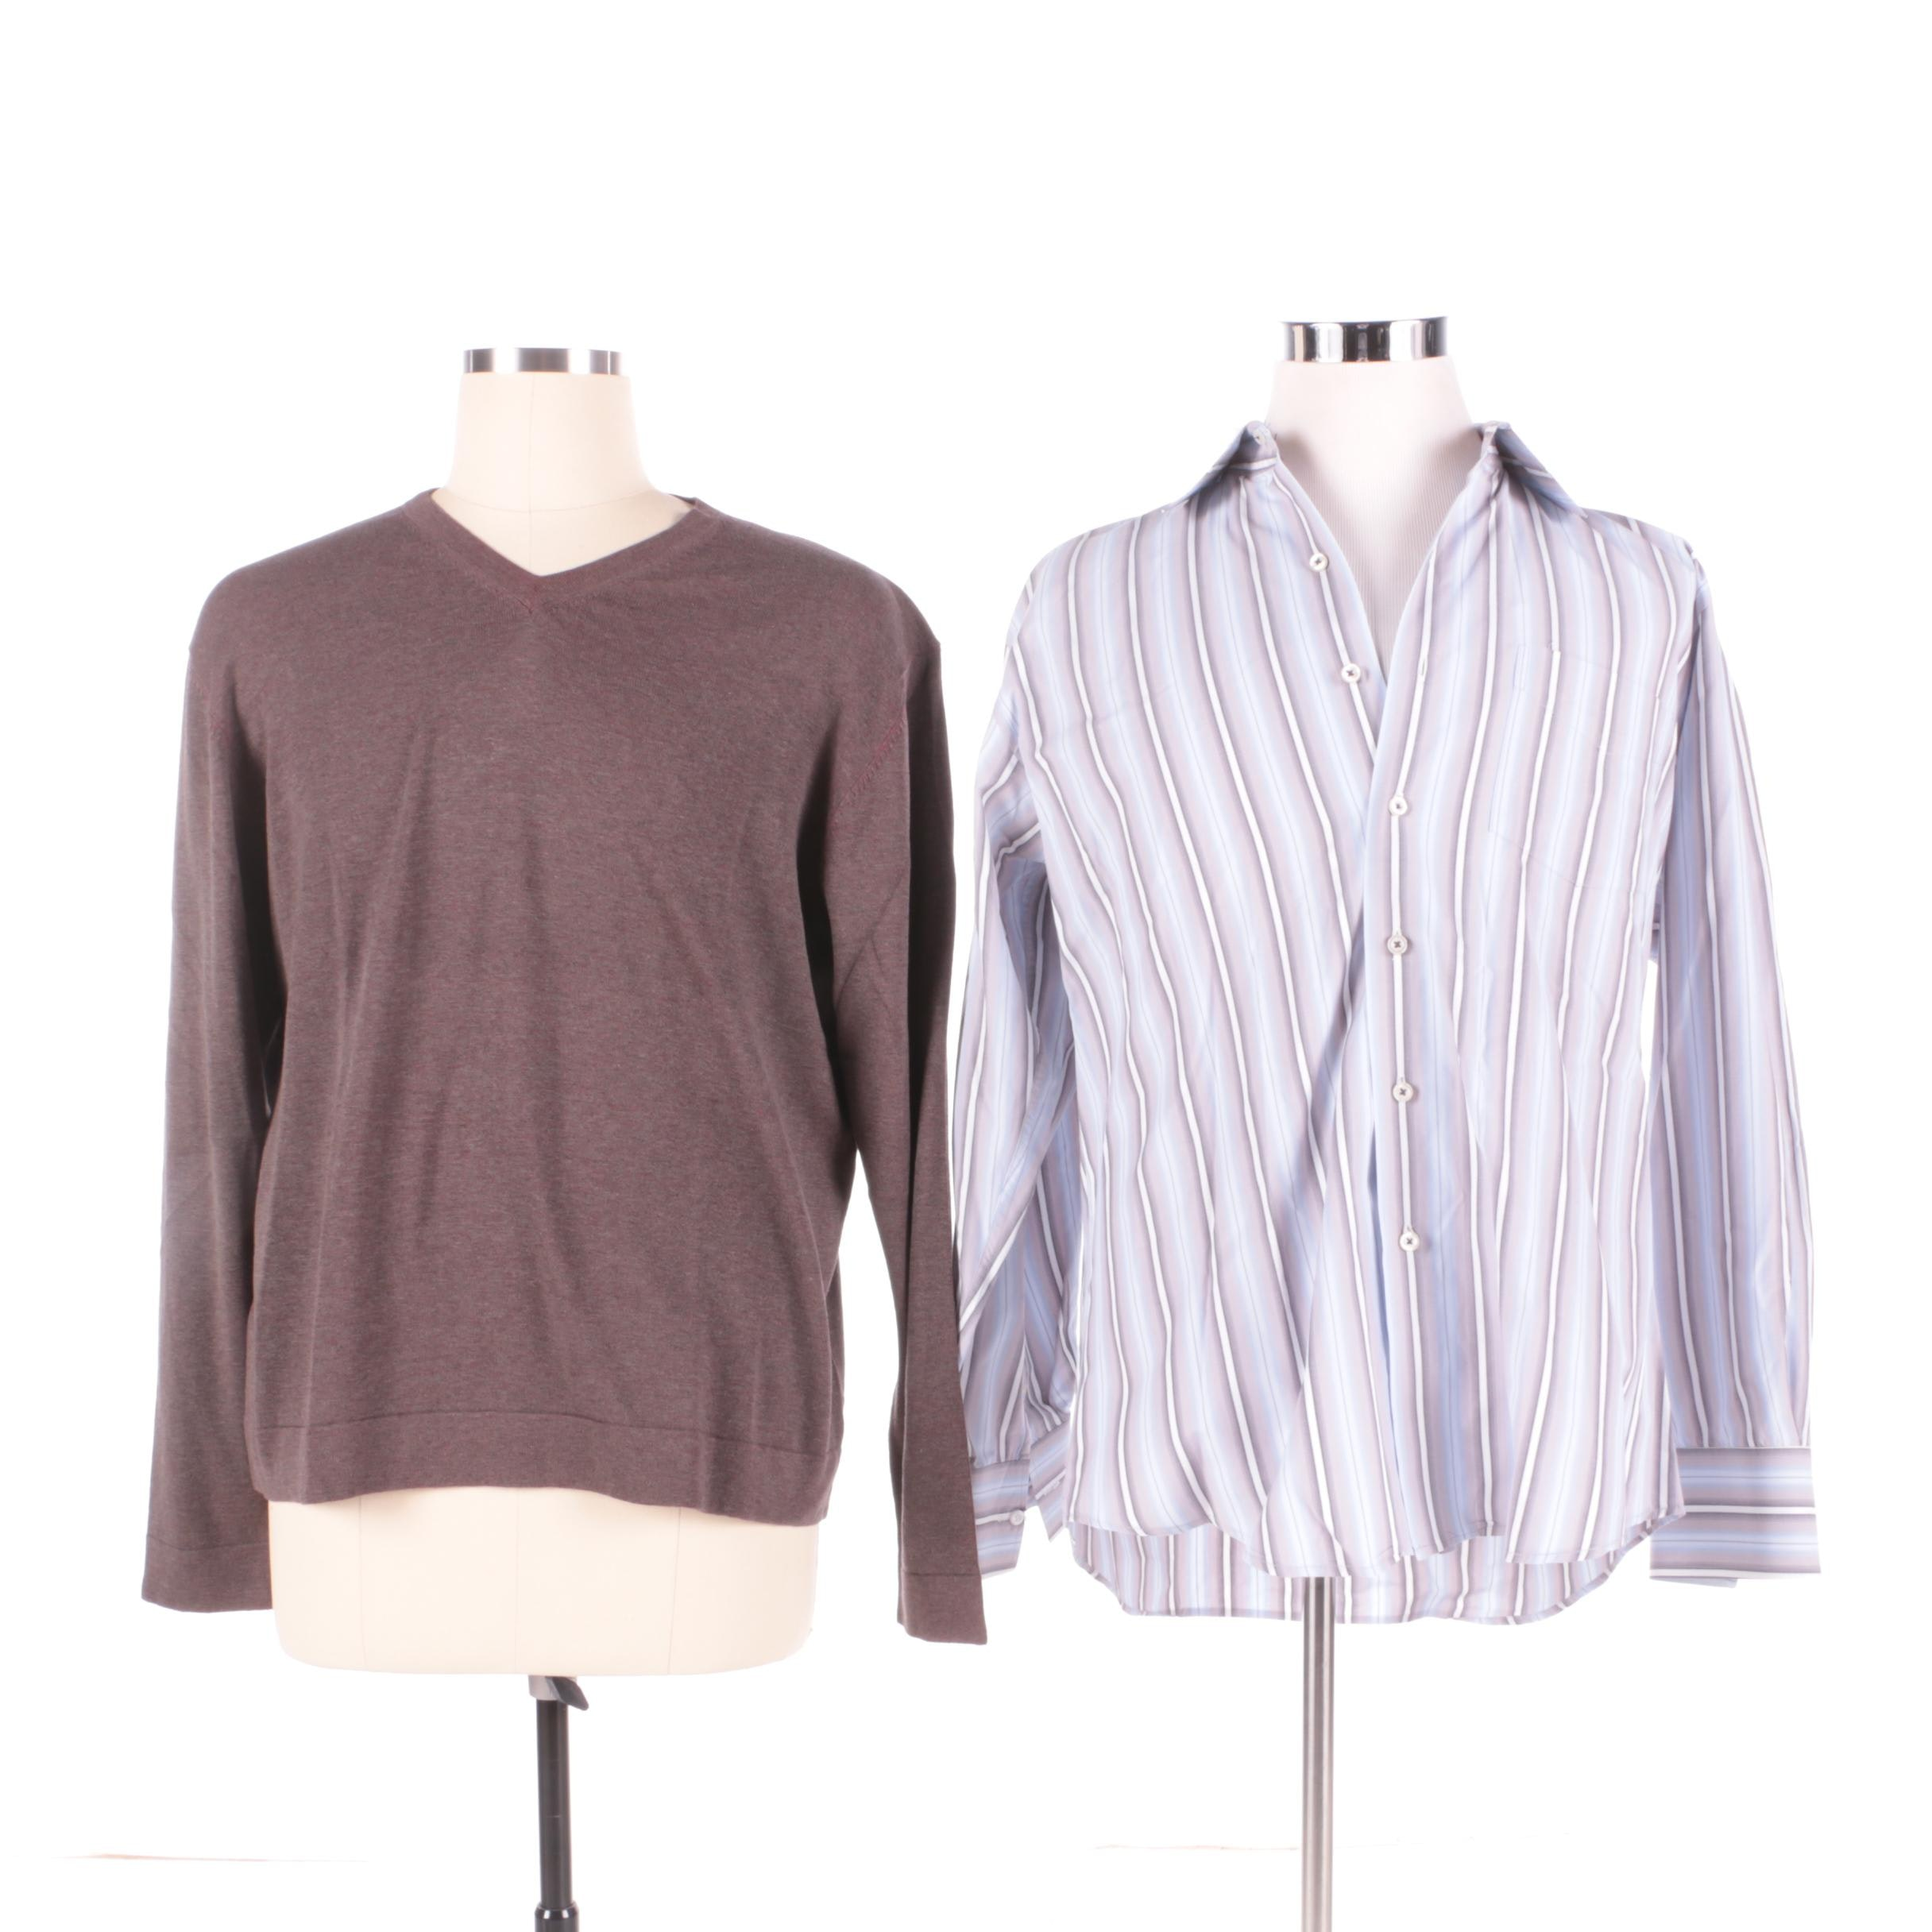 Men's Tulliano Sweater and Button-Front Shirt